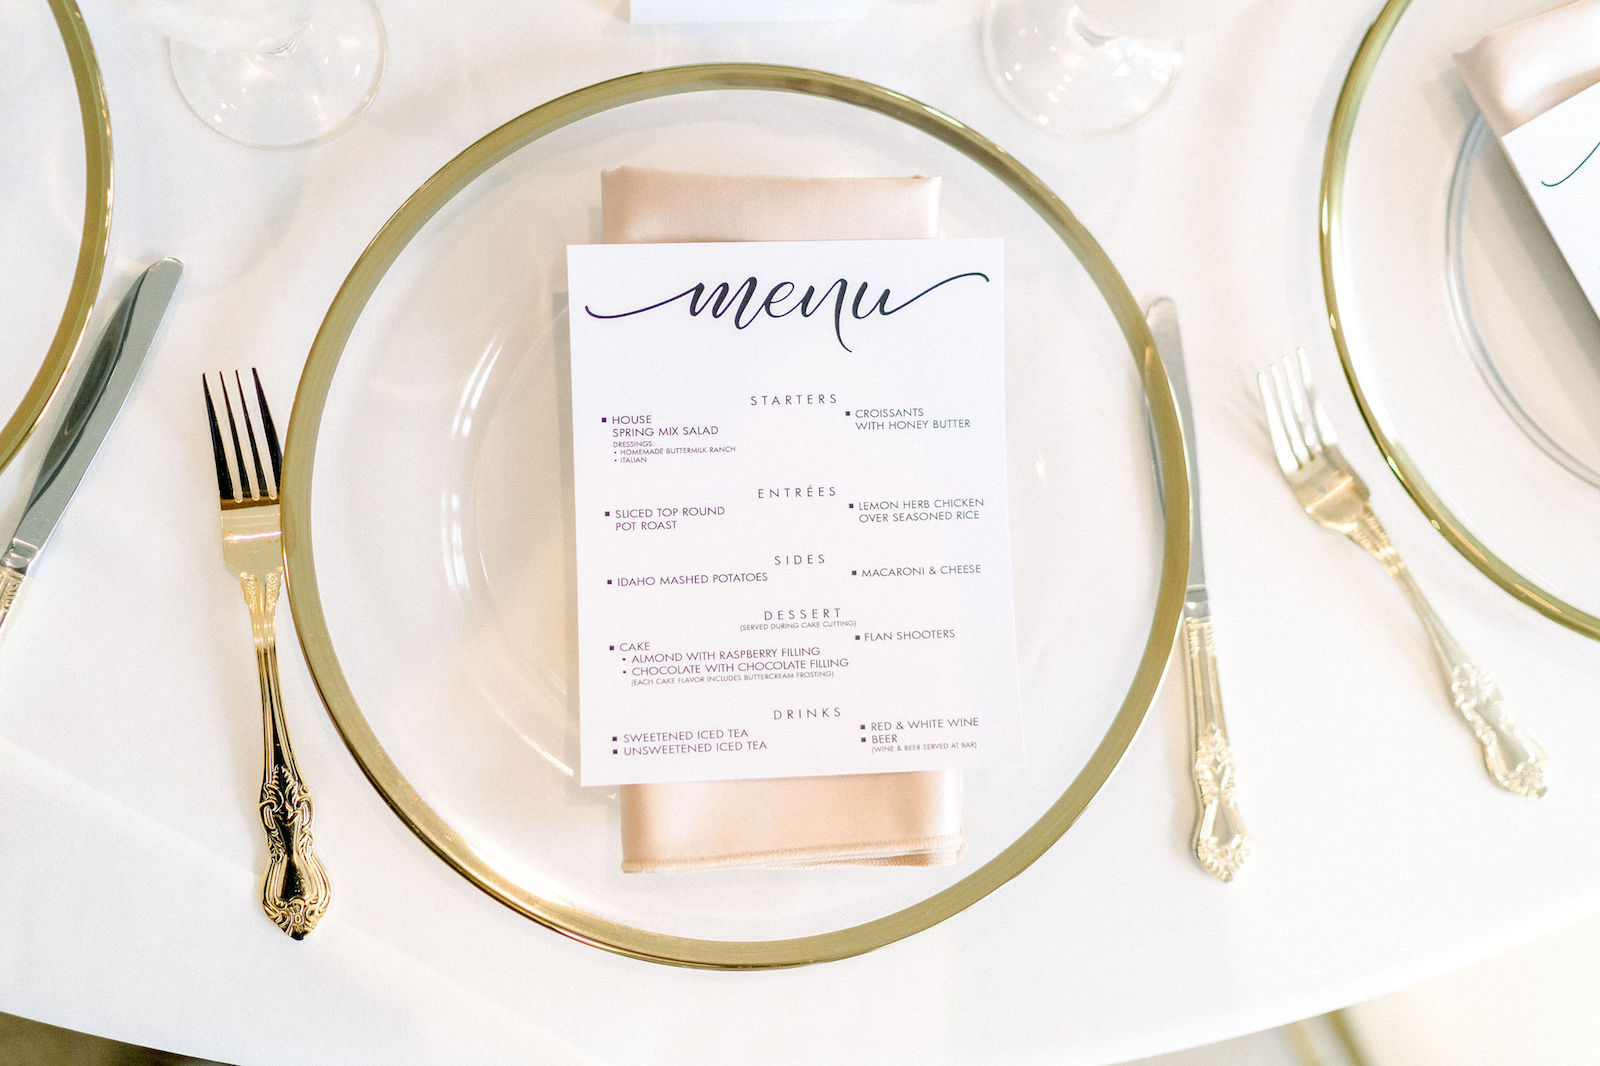 Wedding Reception Table Place Setting With Clear Glass Charger Plates With Gold Rim And Gold Flatware Silverware Classic Traditional Menu Card On Champagne Gold Satin Napkin Marry Me Tampa Bay